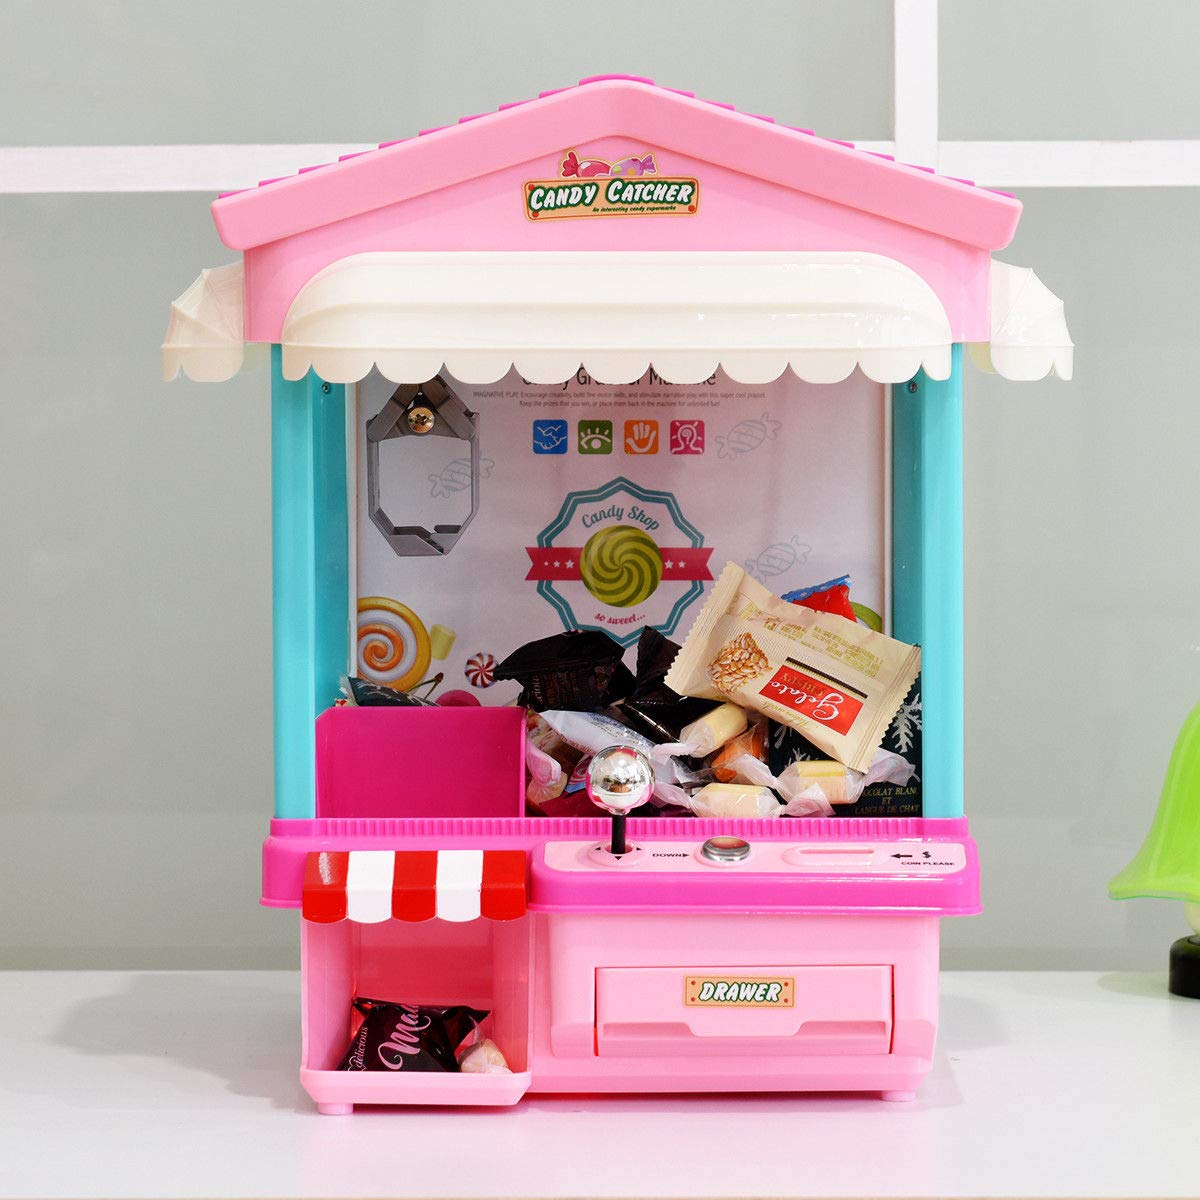 Snow Shop Everything Kids Electronic Claw Toy Grabber Machine Home Arcade w/ Lights & Music & Coins by Snow Shop Everything (Image #7)